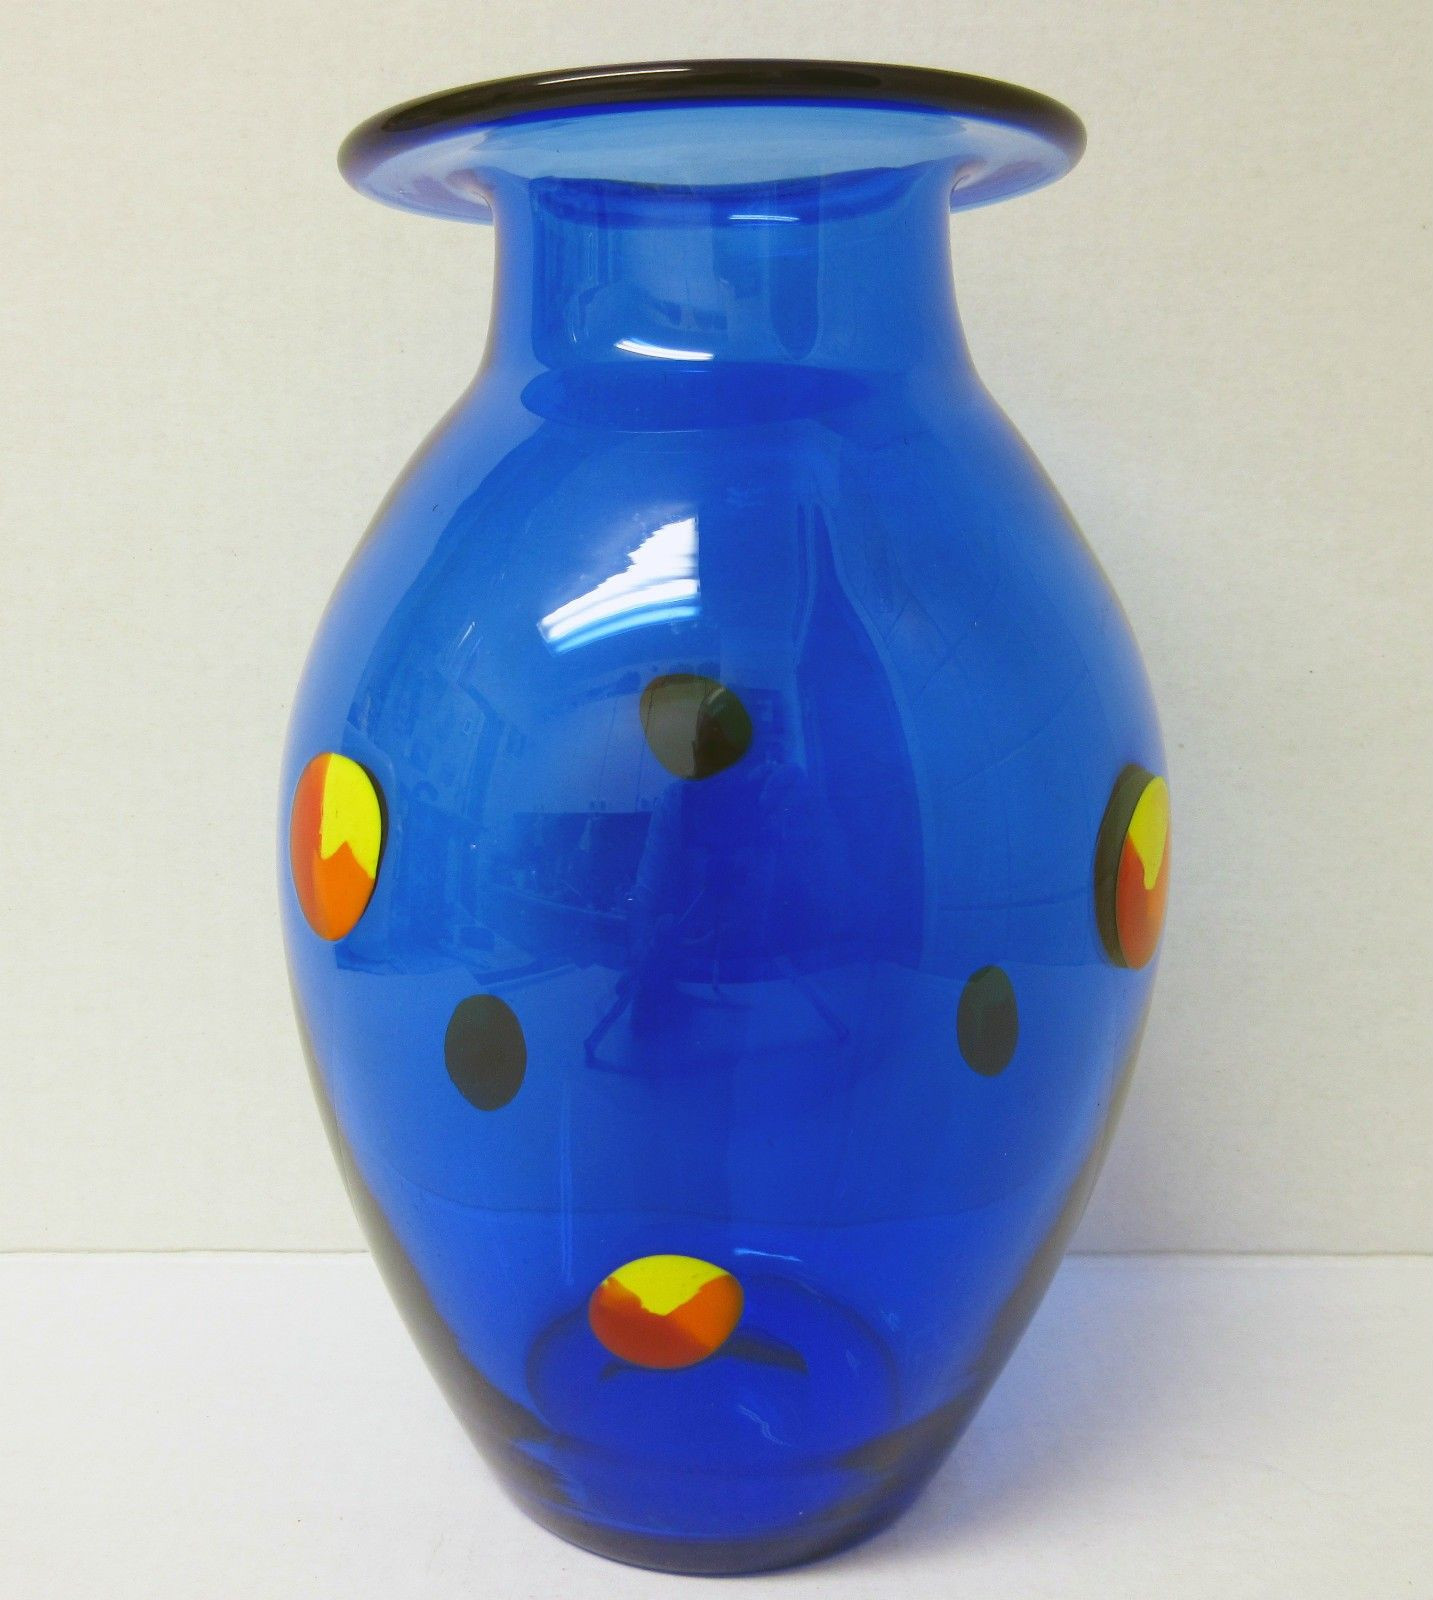 Hand Blown Glass Vases for Sale Of Cobalt Blue with Multi Color Prunts orrefors Sweden Art Glass Vase Throughout Cobalt Blue with Multi Color Prunts orrefors Sweden Art Glass Vase Measures Approximately 8 1 2″ X 5″ Sand Blasted Etched Signature On the Base